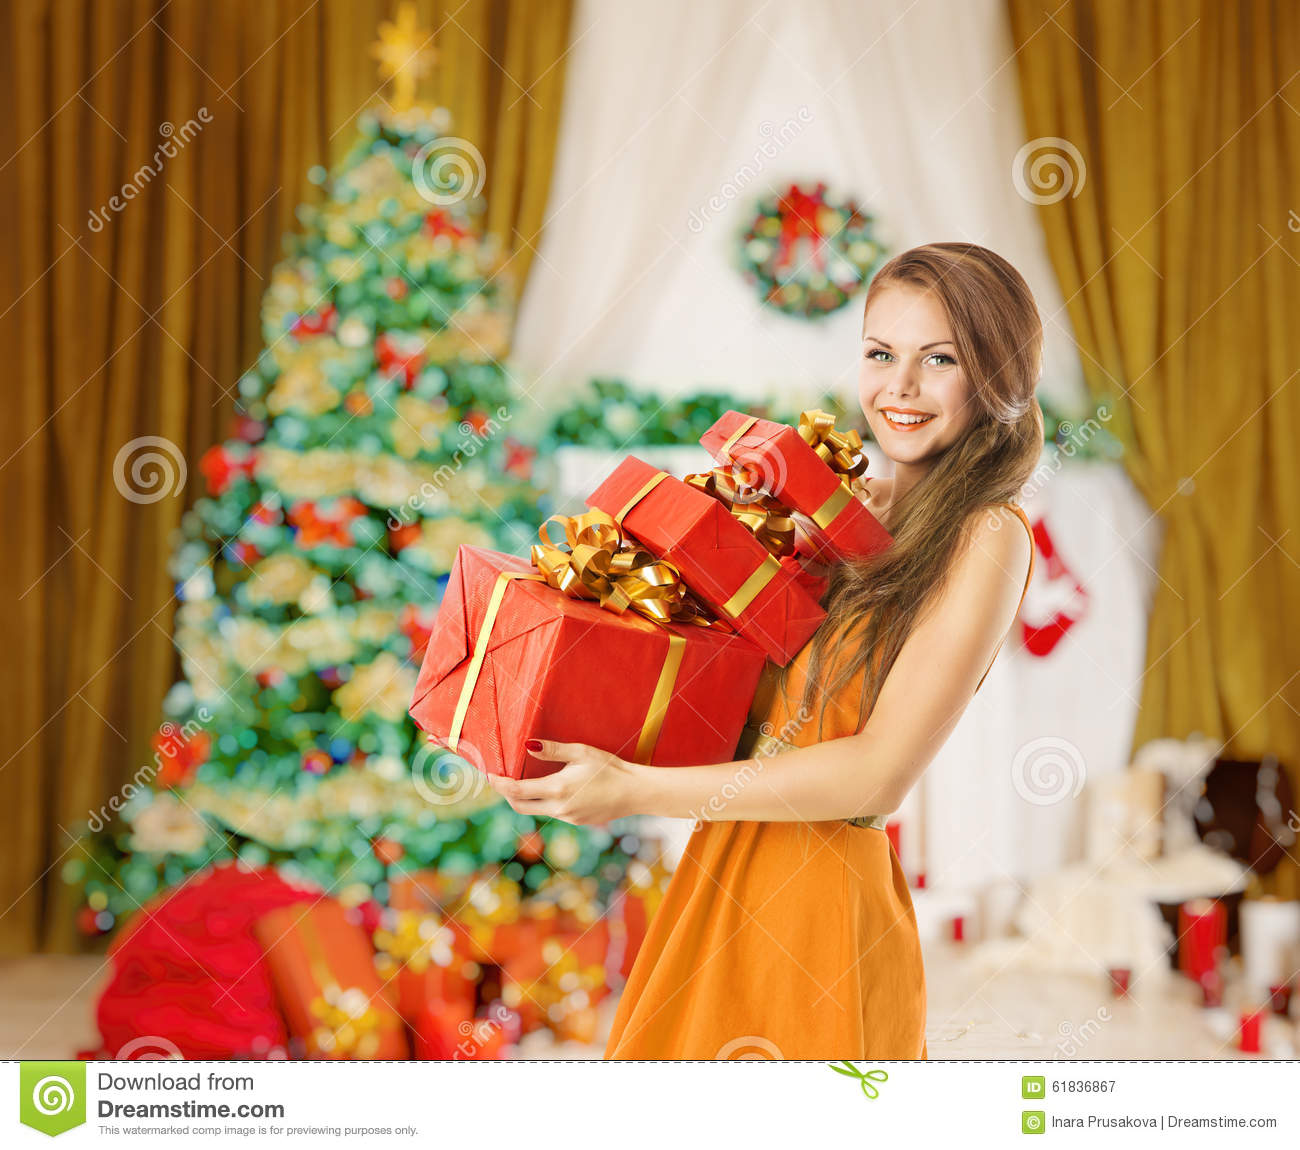 Woman Christmas Presents Gifts Boxes, Holiday Model Girl Stock Image ...